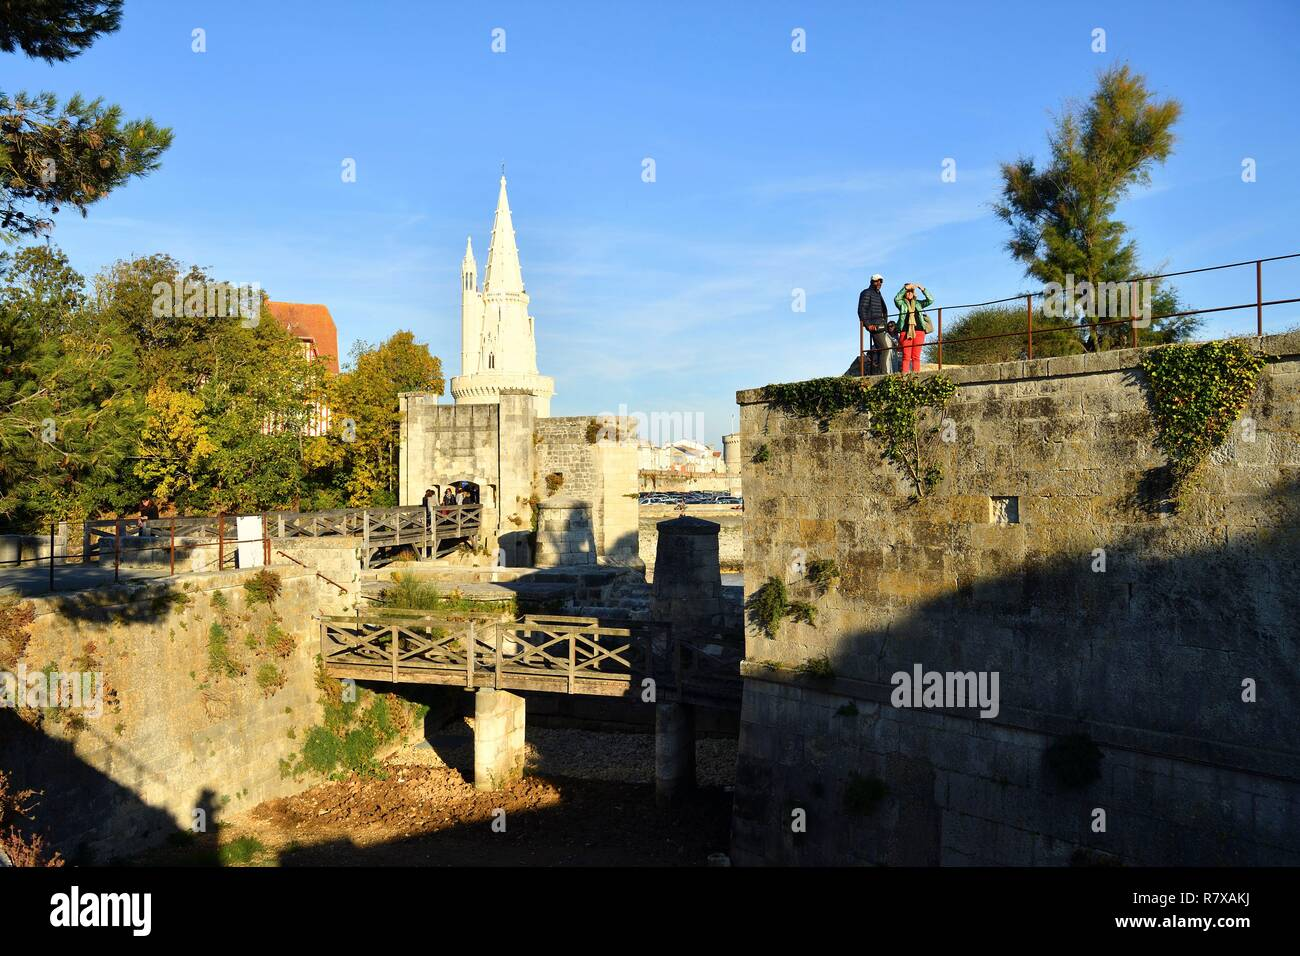 France, Charente-Maritime, La Rochelle, Ramparts with Porte des Deux Moulins (gate of the Two Mills) and Lantern tower (Tour de la Lanterne) at the entrance of the old port - Stock Image